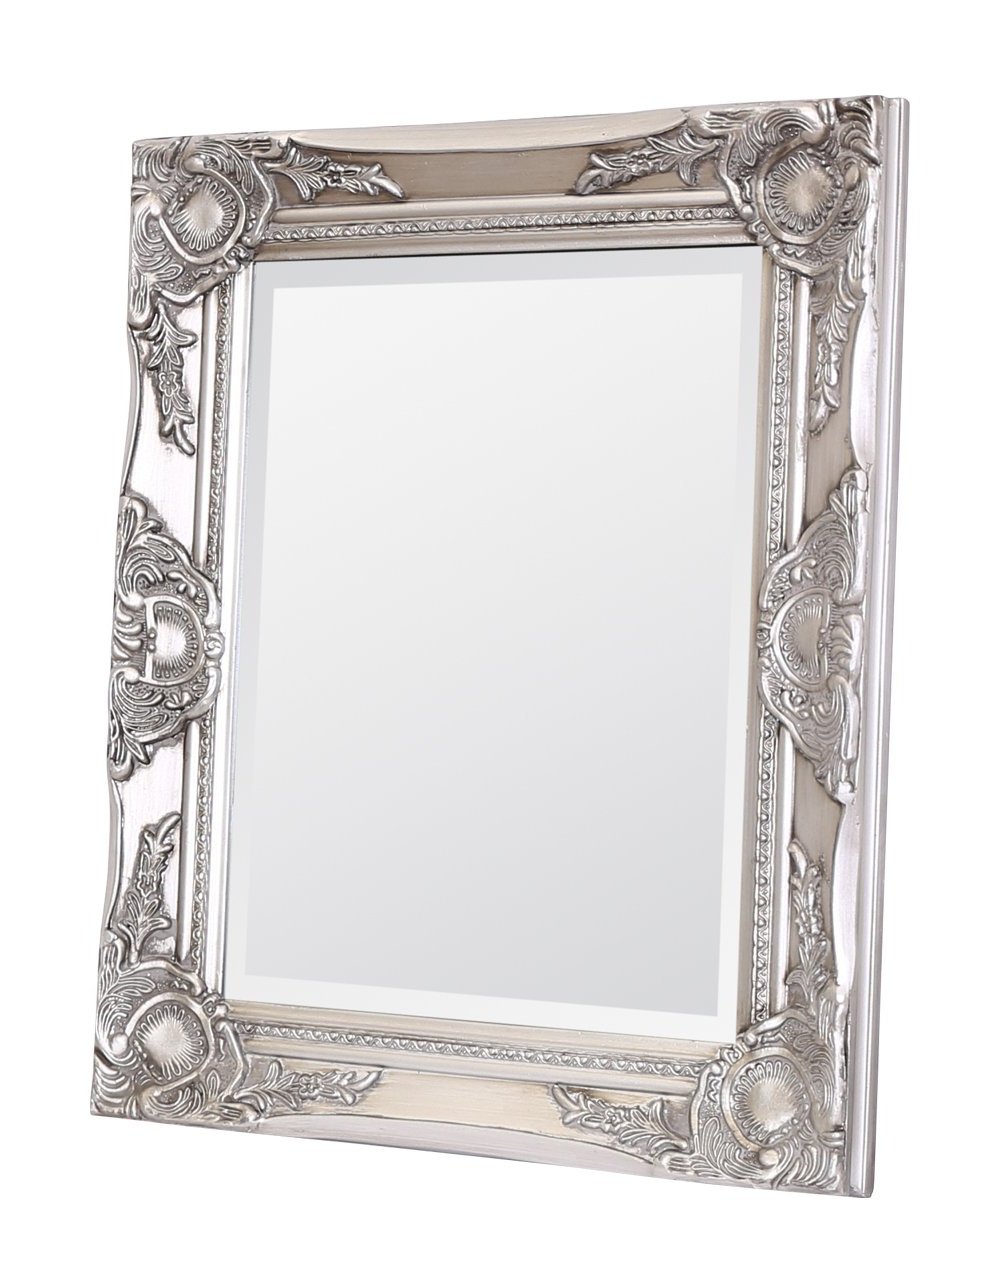 Most Popular Rectangle Wall Mirrors Inside Select Mirrors Haywood Rectangle Wall Mirror (42cm X 52cm, Antique Silver) (View 15 of 20)